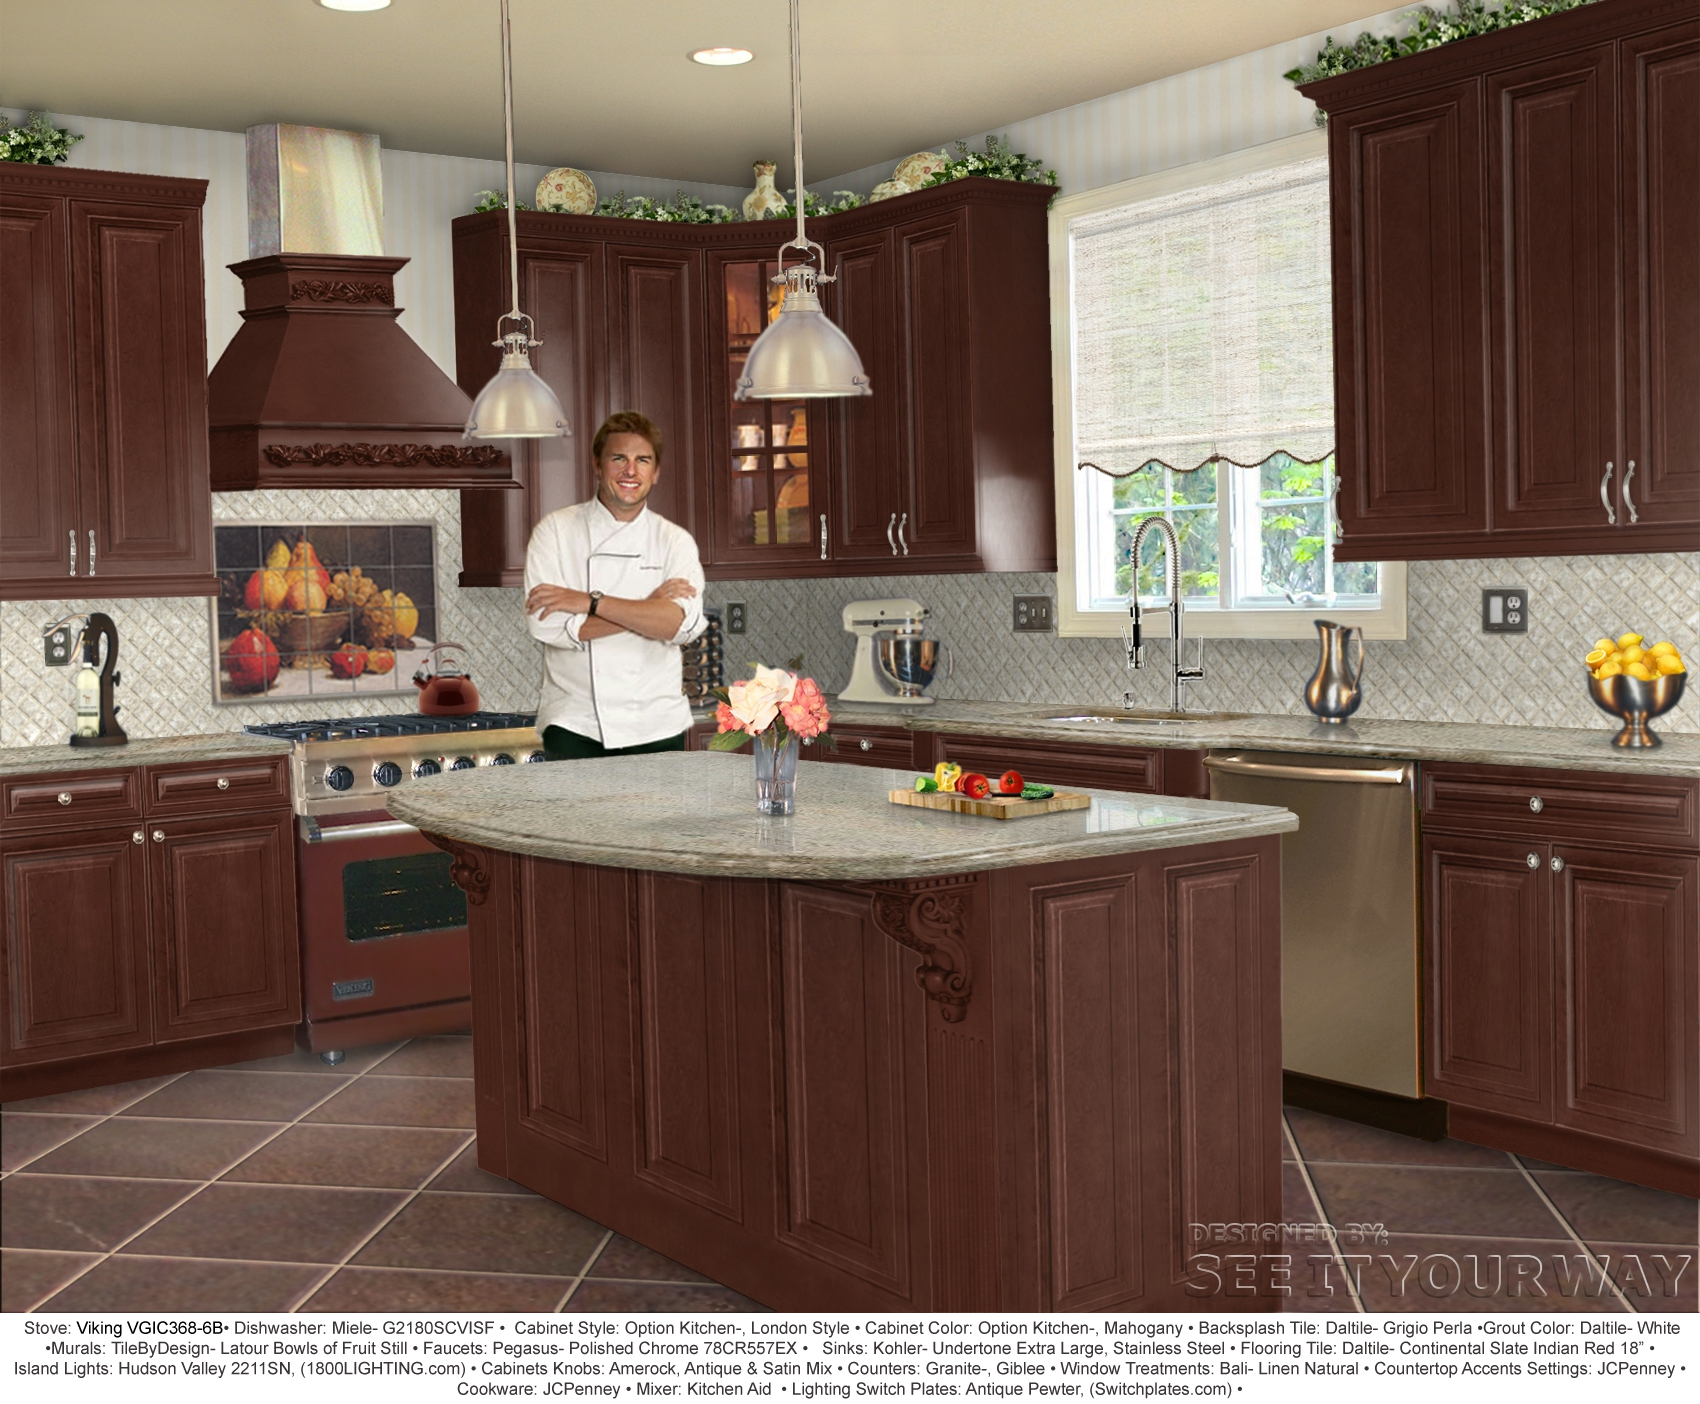 In the behr paint color gallery sample kitchen designs for Kitchen samples